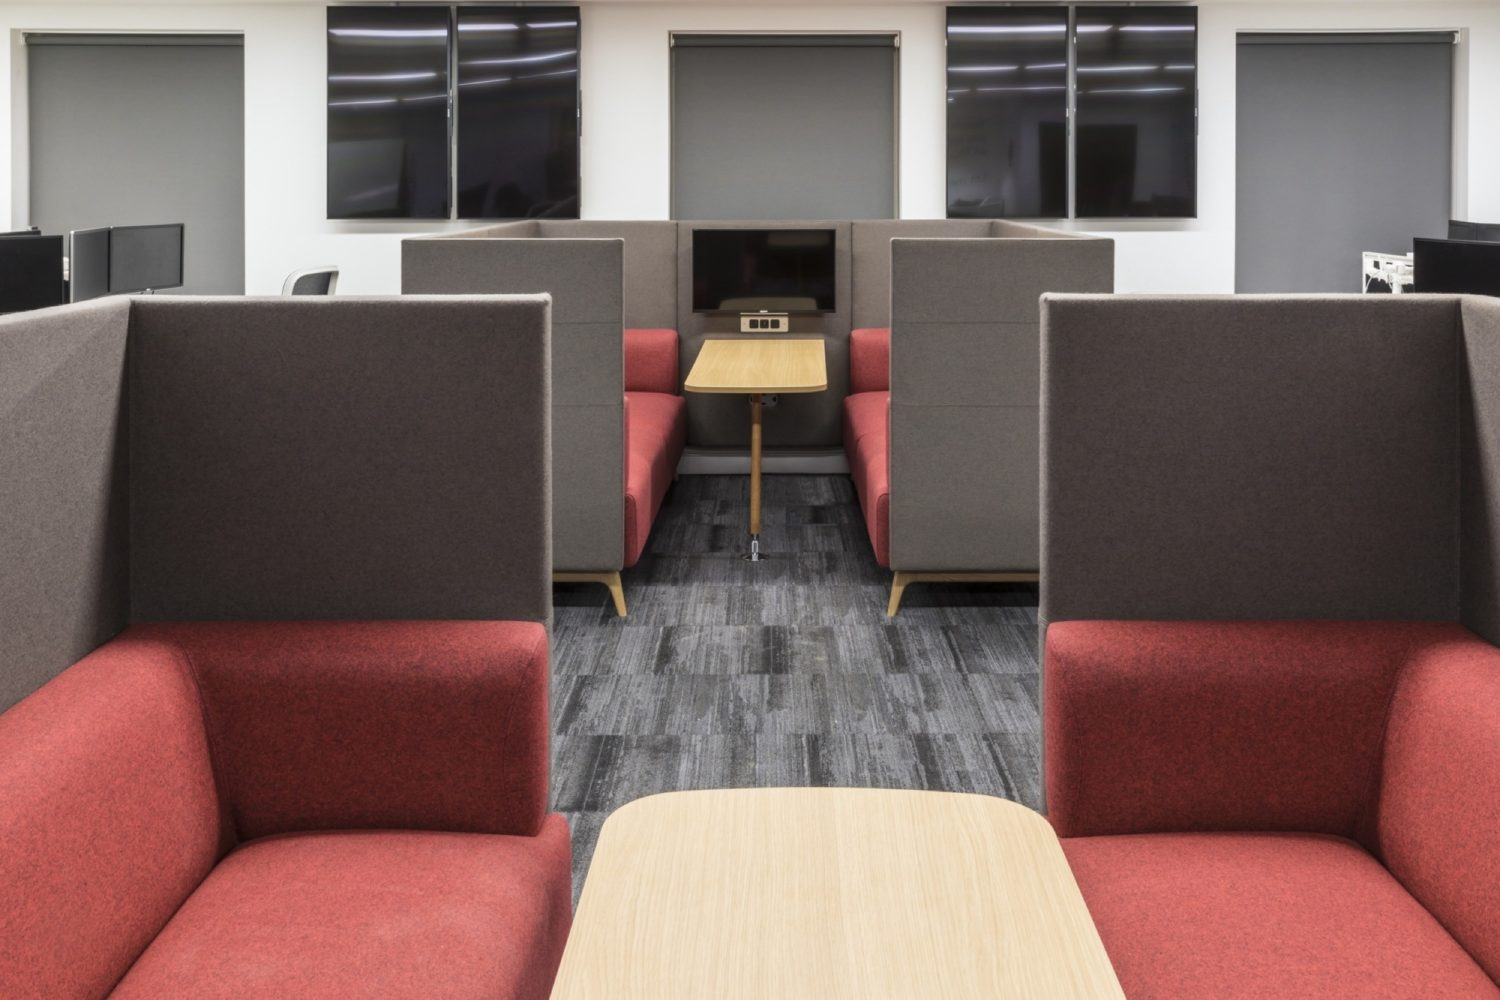 office fit out furniture in meeting pod.jpg